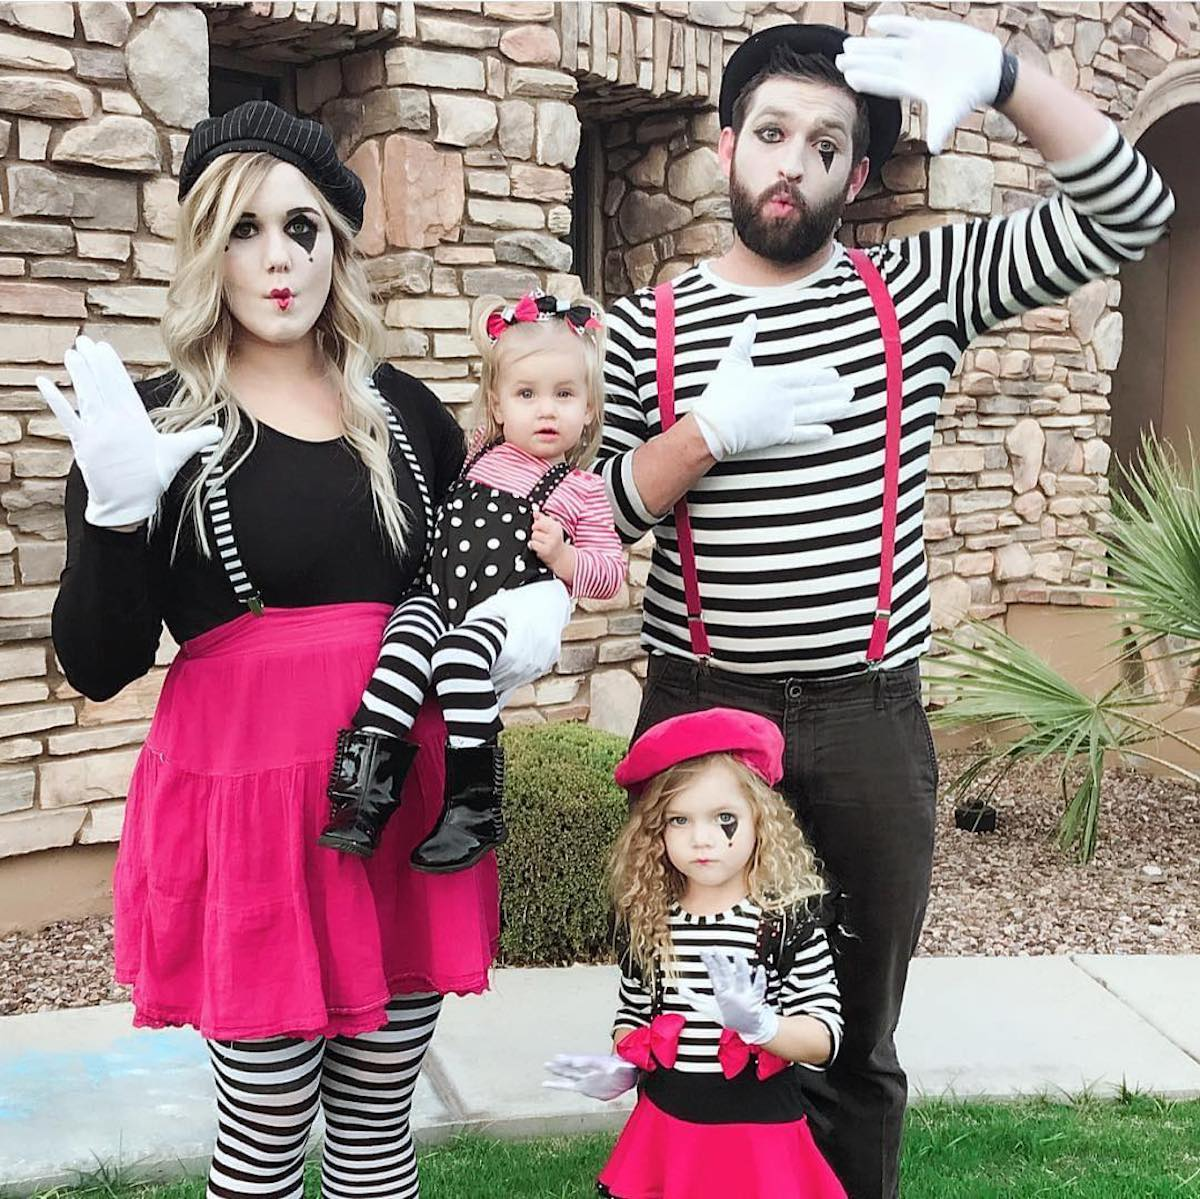 Family poses while wearing pink and black mime costumes.